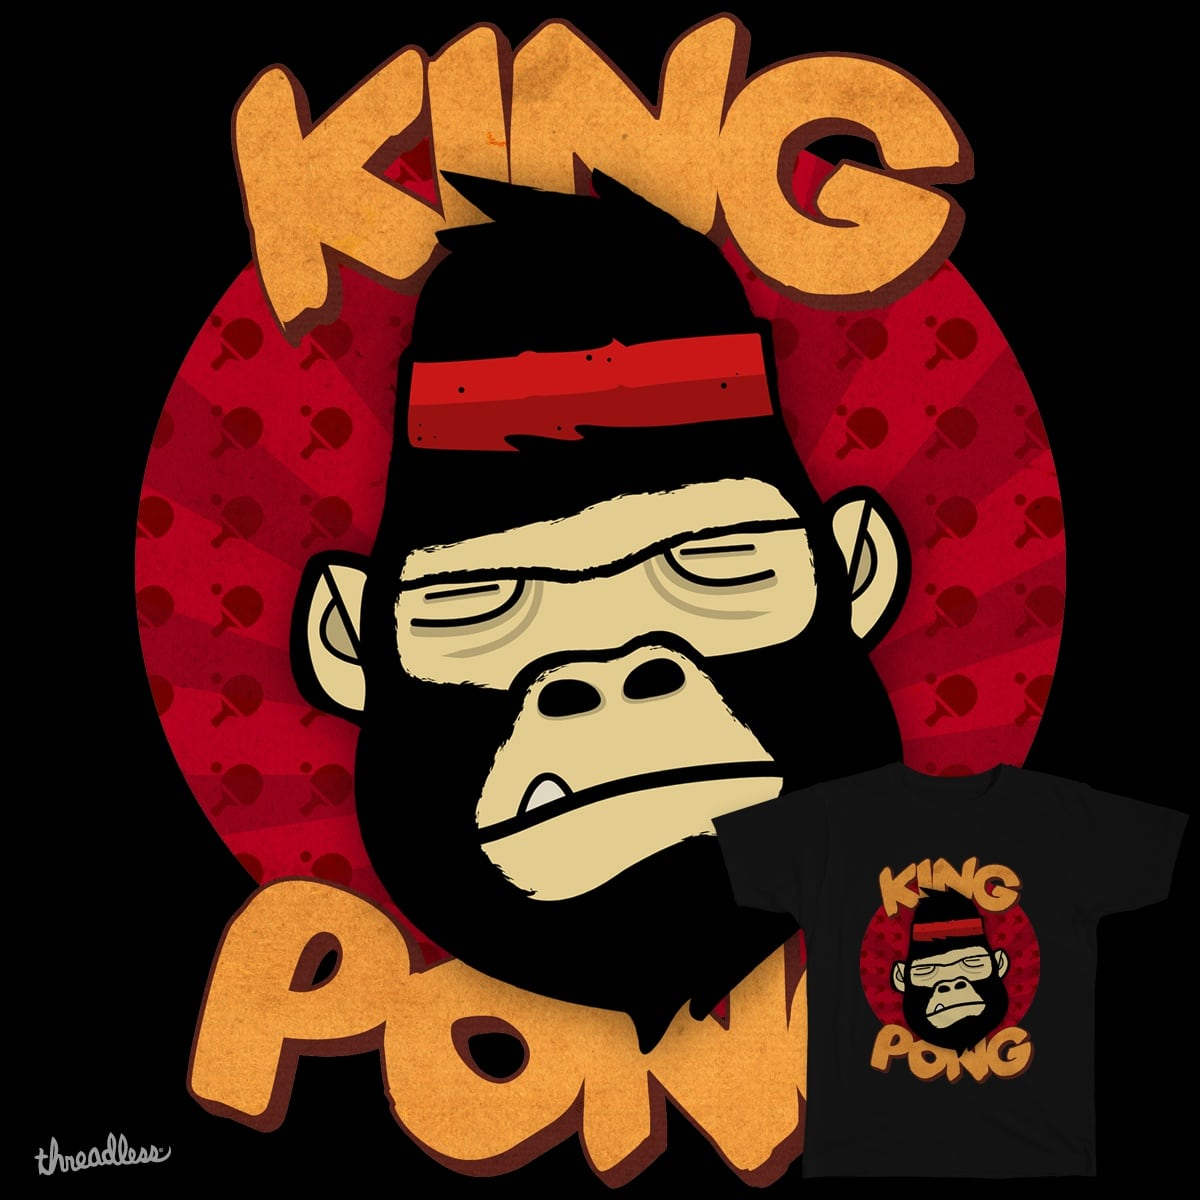 King Pong by unisize on Threadless